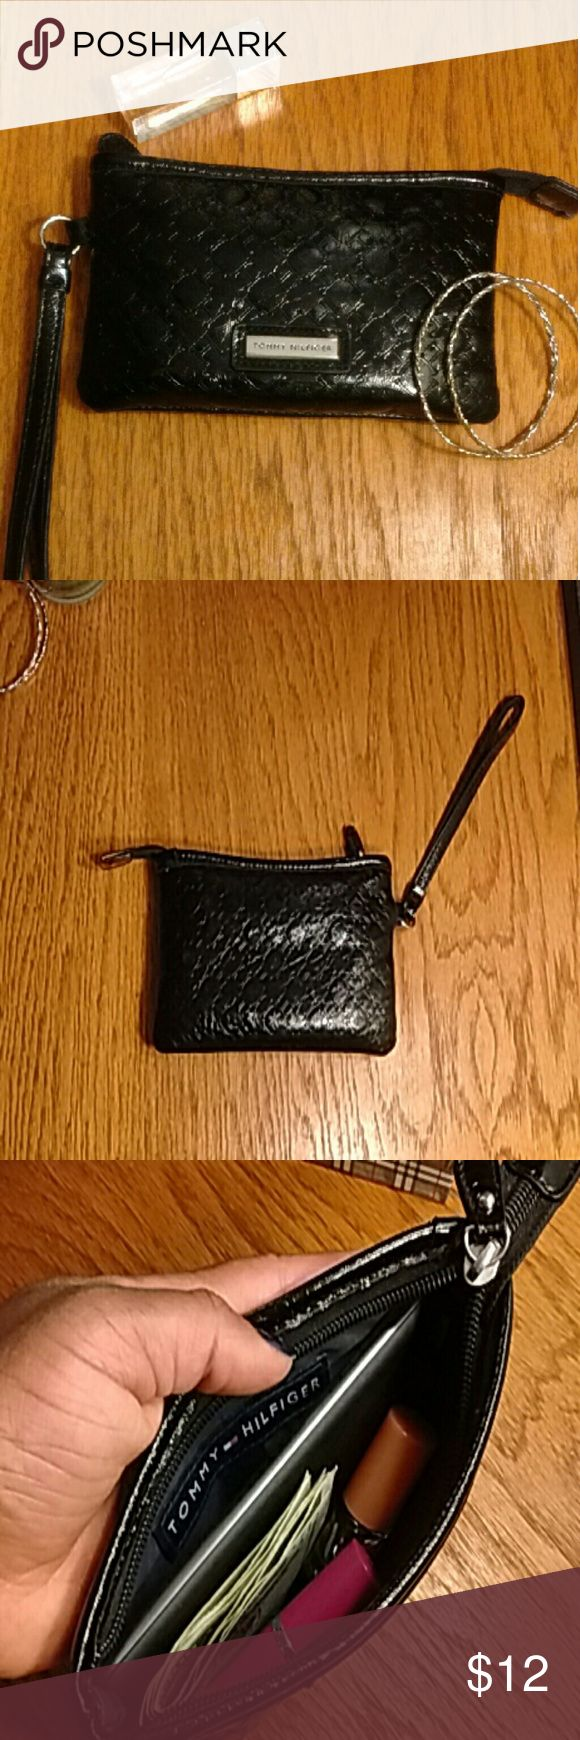 """TOMMY HILFIGER Embossed wristlet Crafted in vinyl embossed with TOMMY HILFIGER's logo, this spacious wristlet can hold lipstick, phone, cash, & more!    Versatile look makes it a perfect day-to-day night piece.   Item is in GREAT condition (was one of my favorite wristlets, so it has been taken care of).  Measurements: 4"""" tall & 7"""" wide Tommy Hilfiger Bags Clutches & Wristlets"""